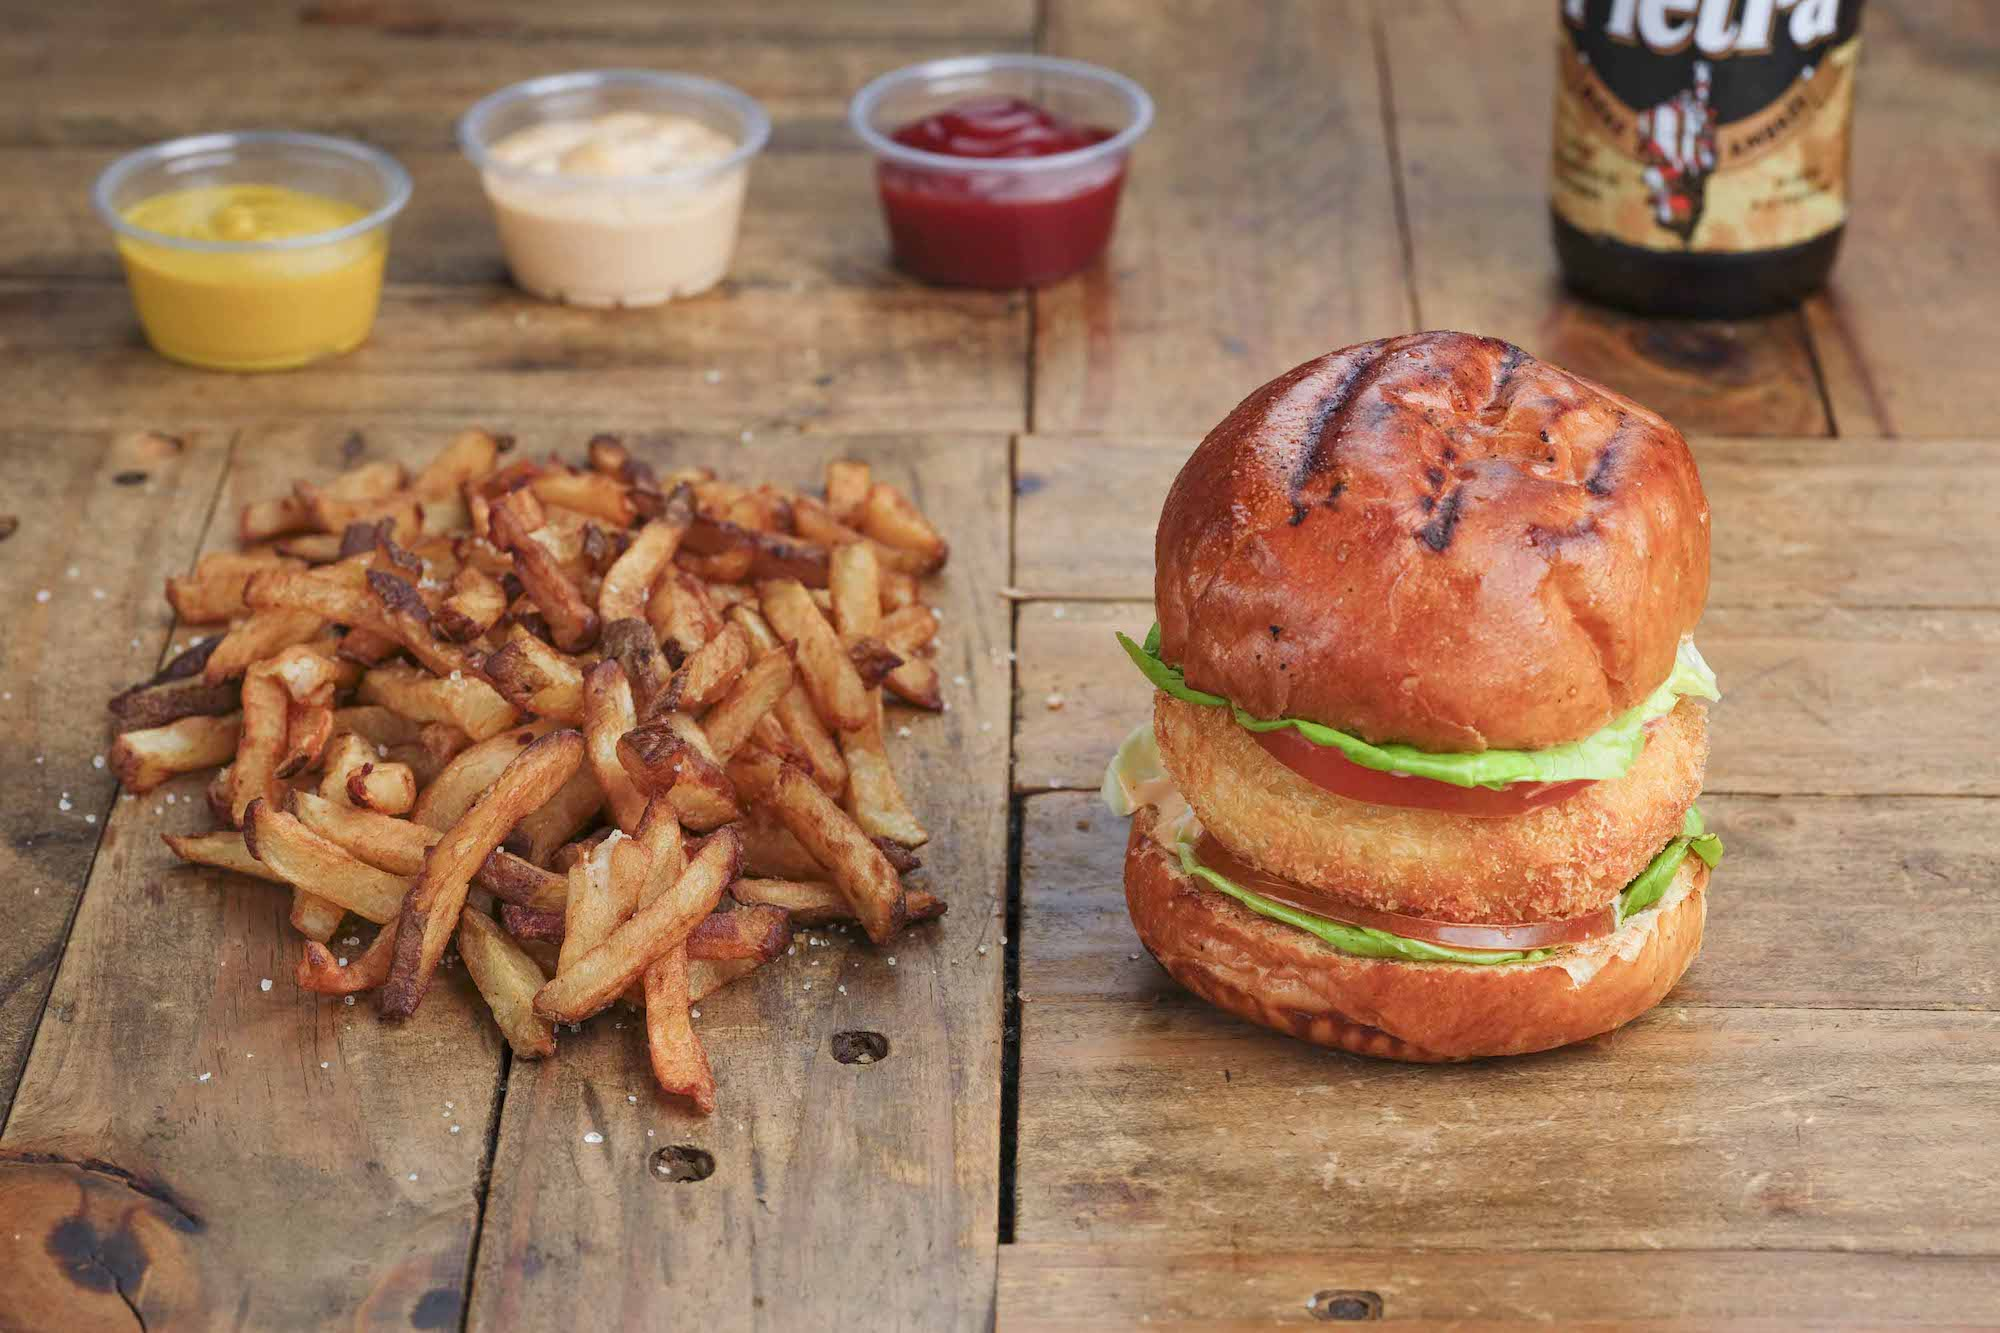 Food Photography by Jose Jeuland Burger Fries on the table